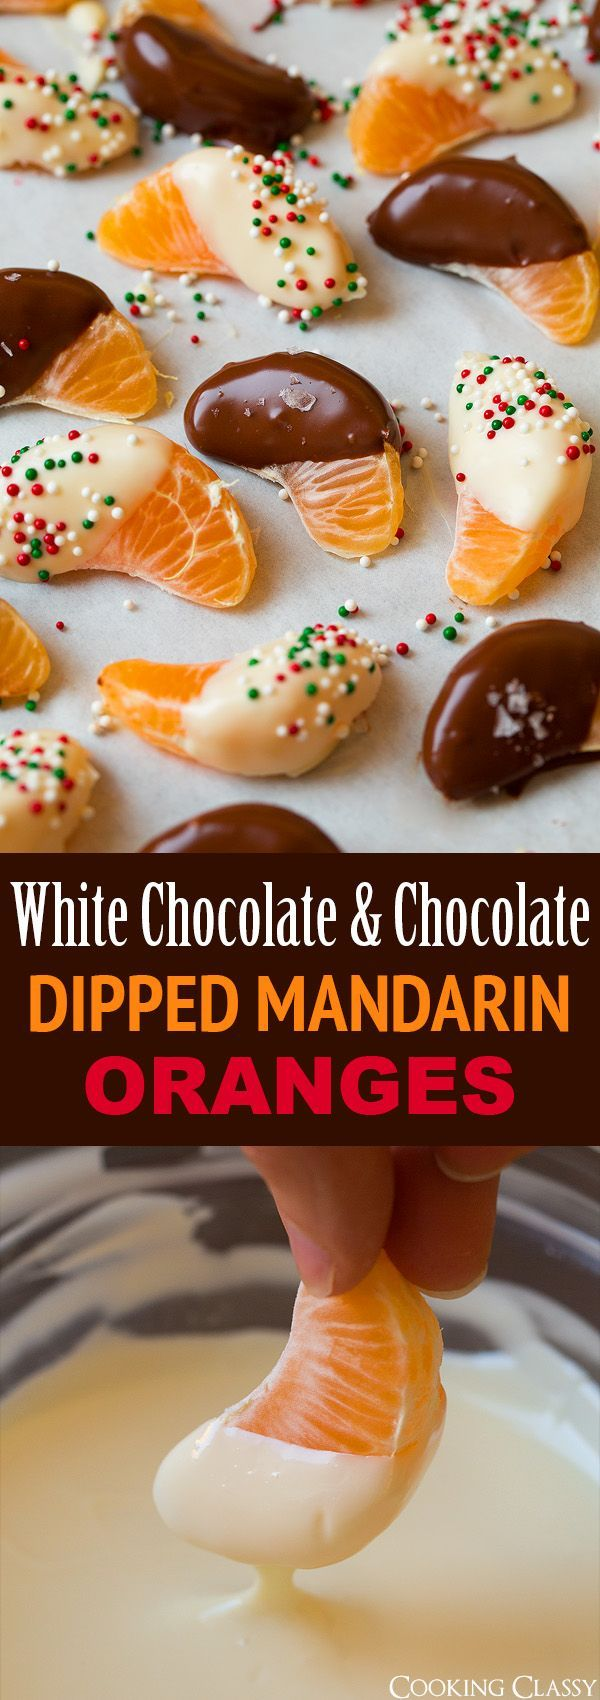 White Chocolate and Chocolate Dipped Mandarin Oranges - perfect last minute treat! Seriously easy and so good!